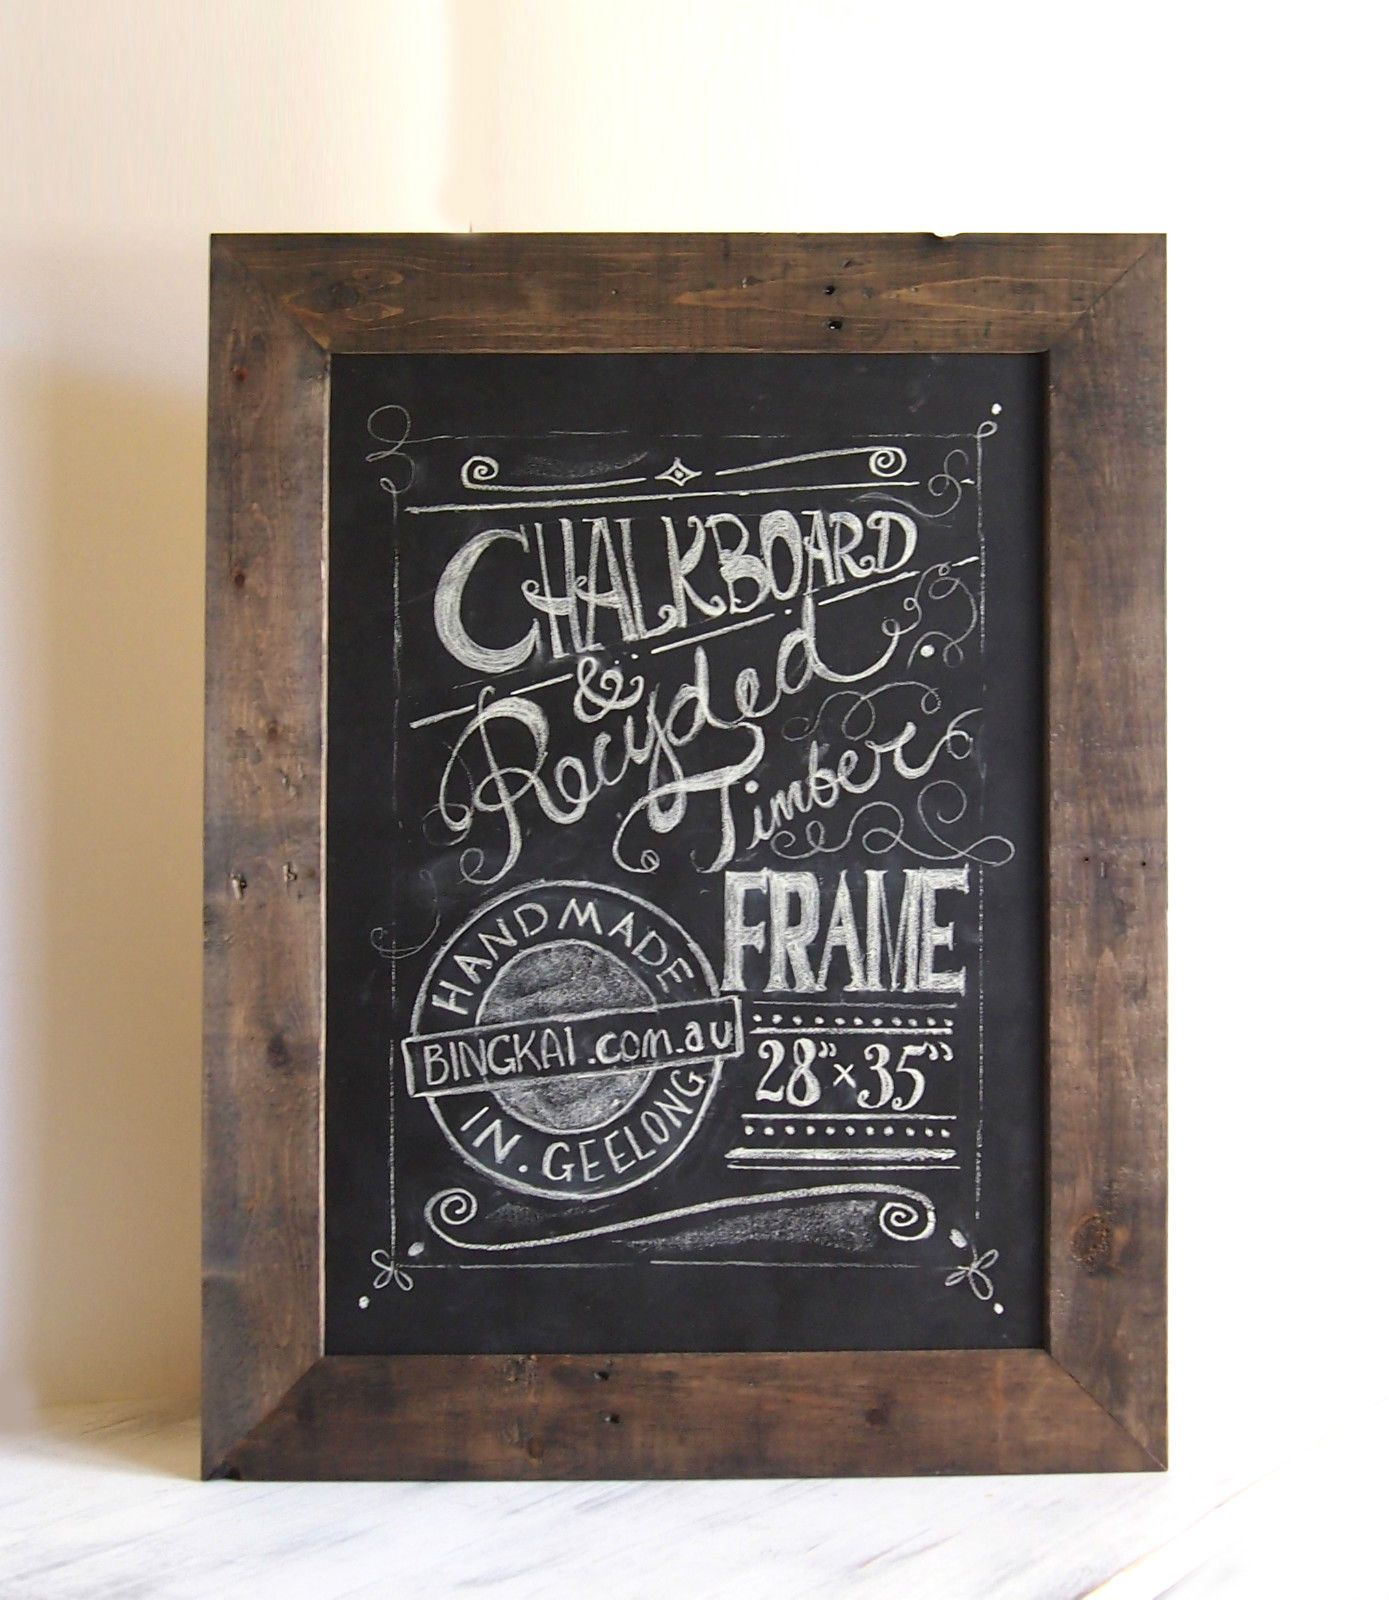 Large Vintage Style Chalkboard Industrial Rustic Frame Recycled Wood Timber